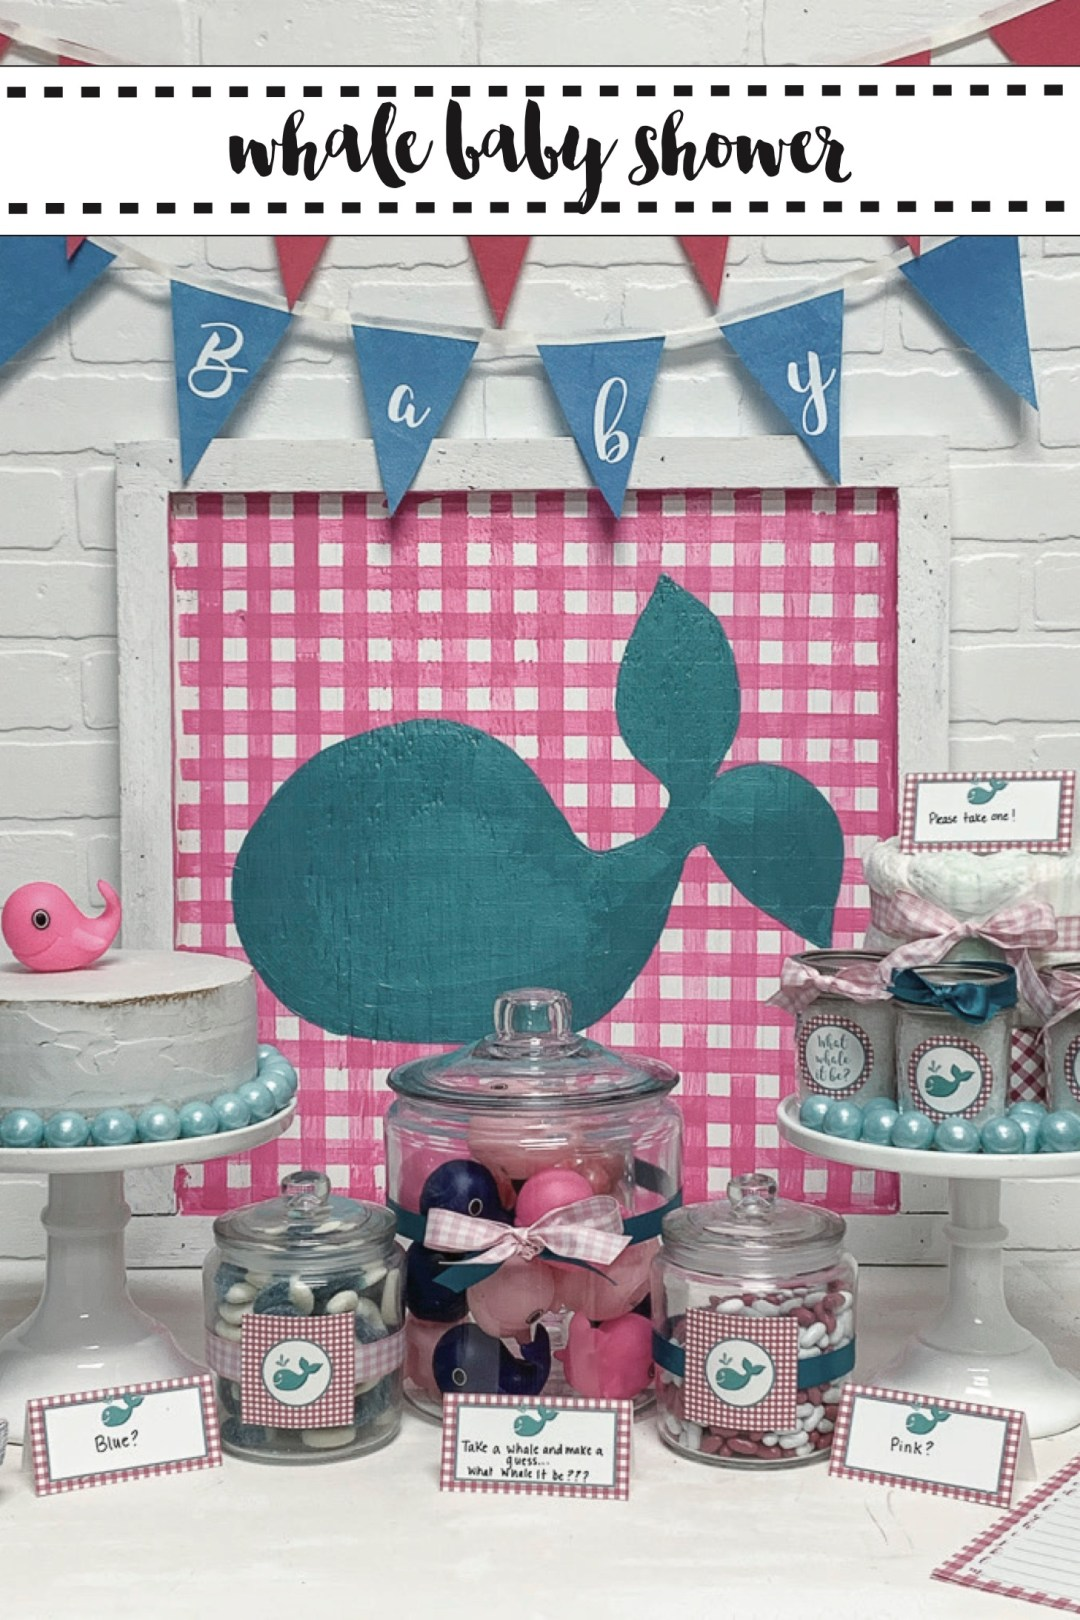 What Whale it Be Baby Shower